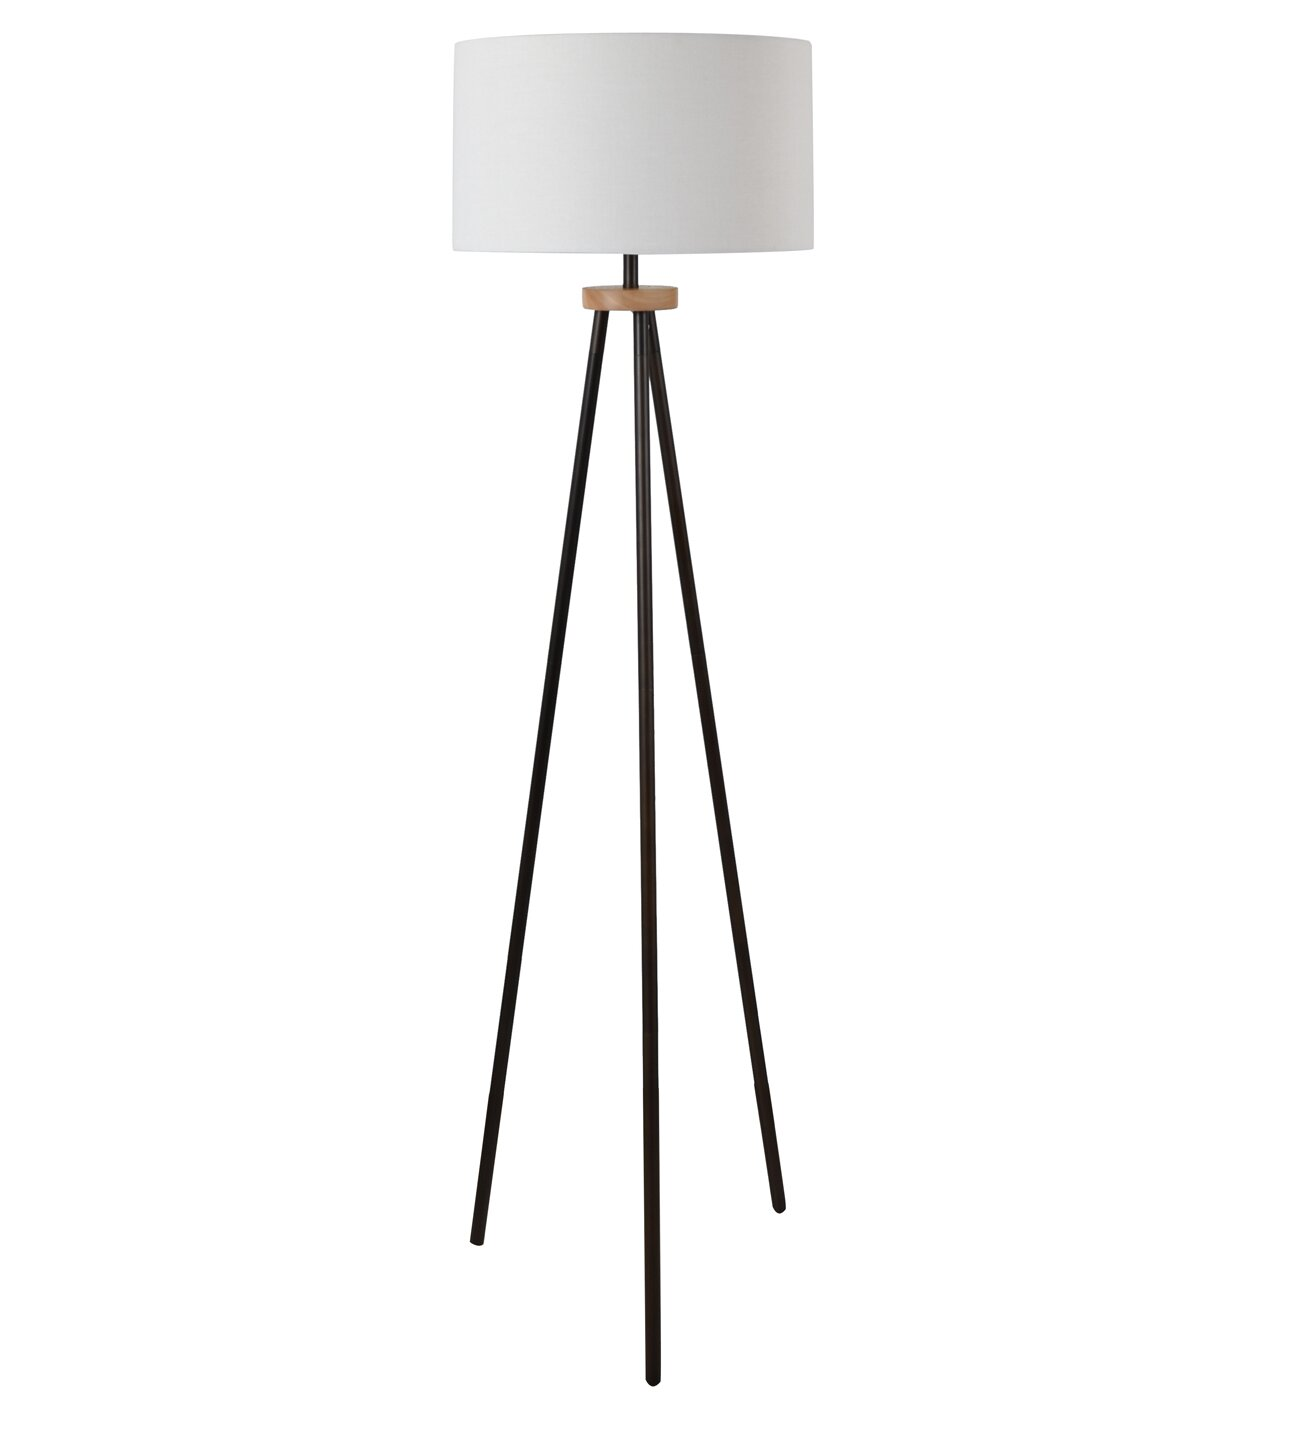 Modern Contemporary Floor Lamps You Ll Love In 2021 Wayfair